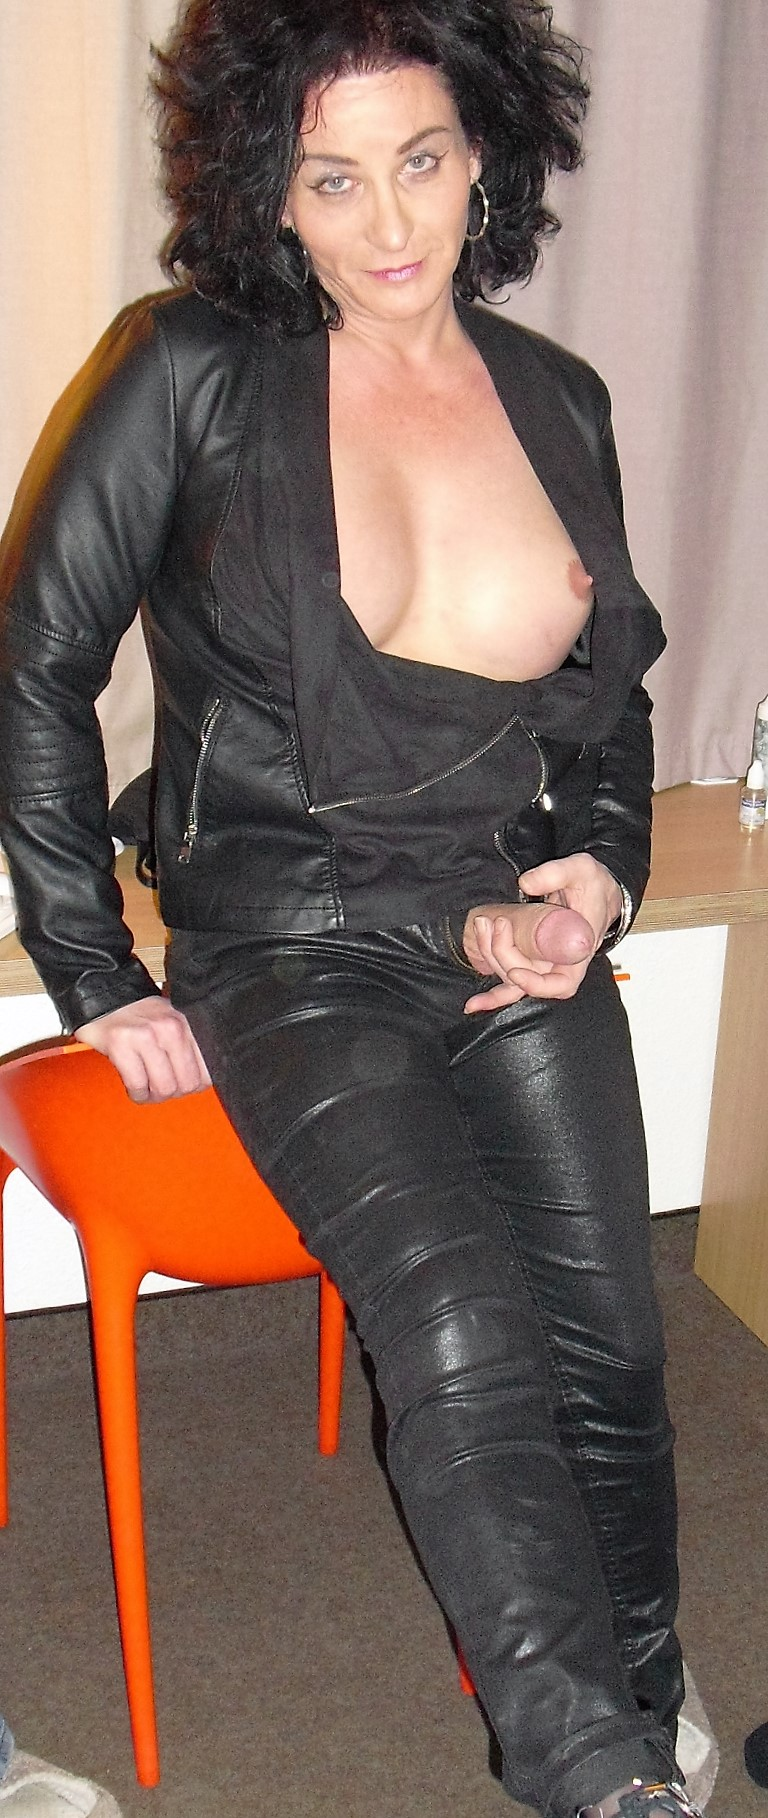 lactating escorts uk sissy